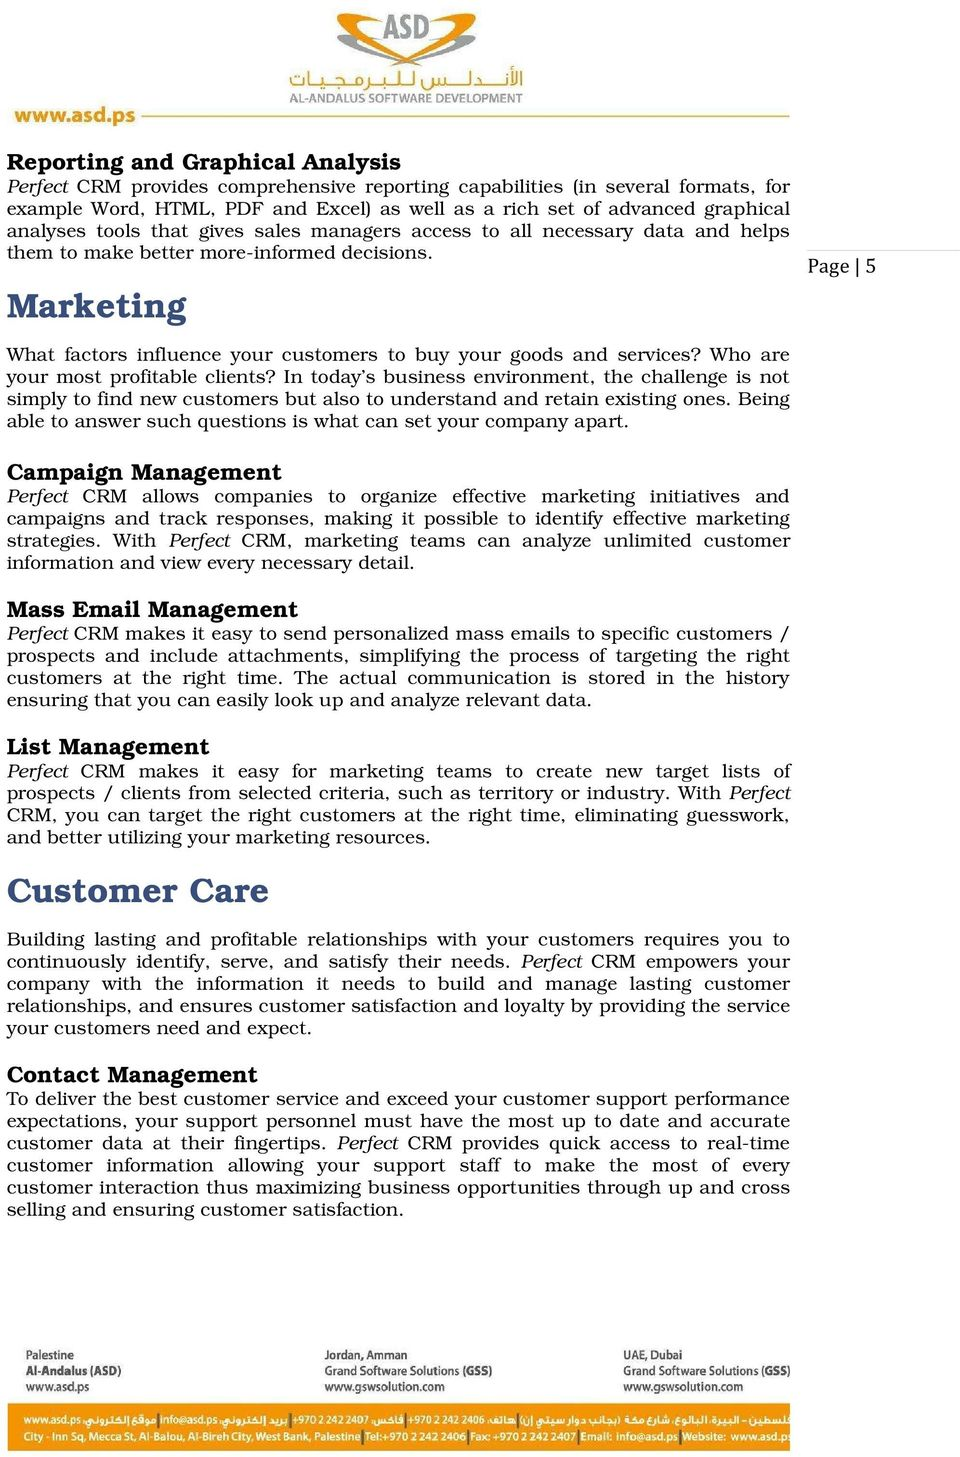 Marketing Page 5 5 What factors influence your customers to buy your goods and services? Who are your most profitable clients?